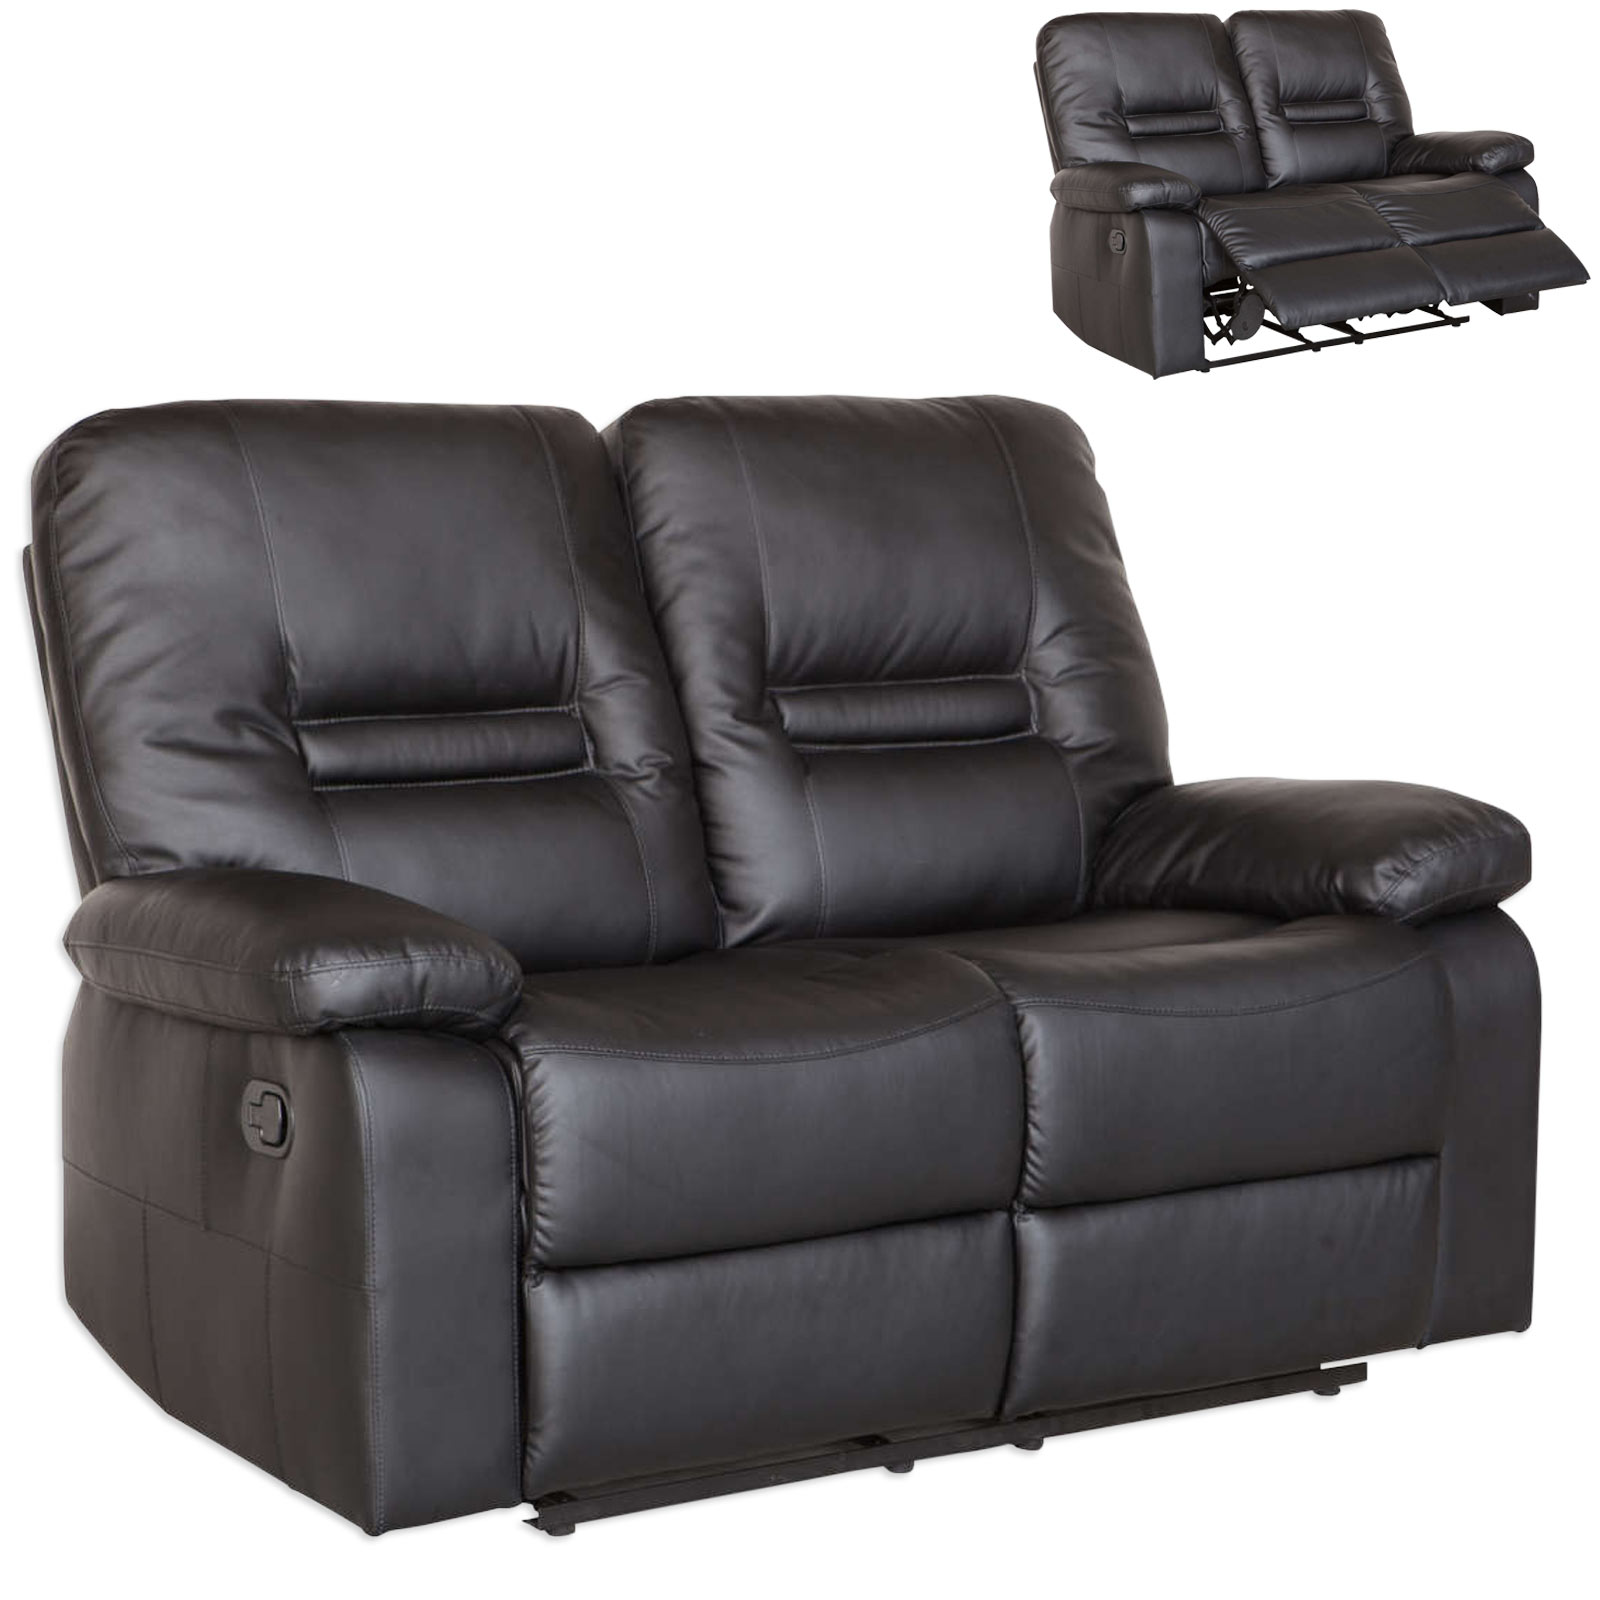 Set 2 Sofas mit Sessel mit Relaxfunktion